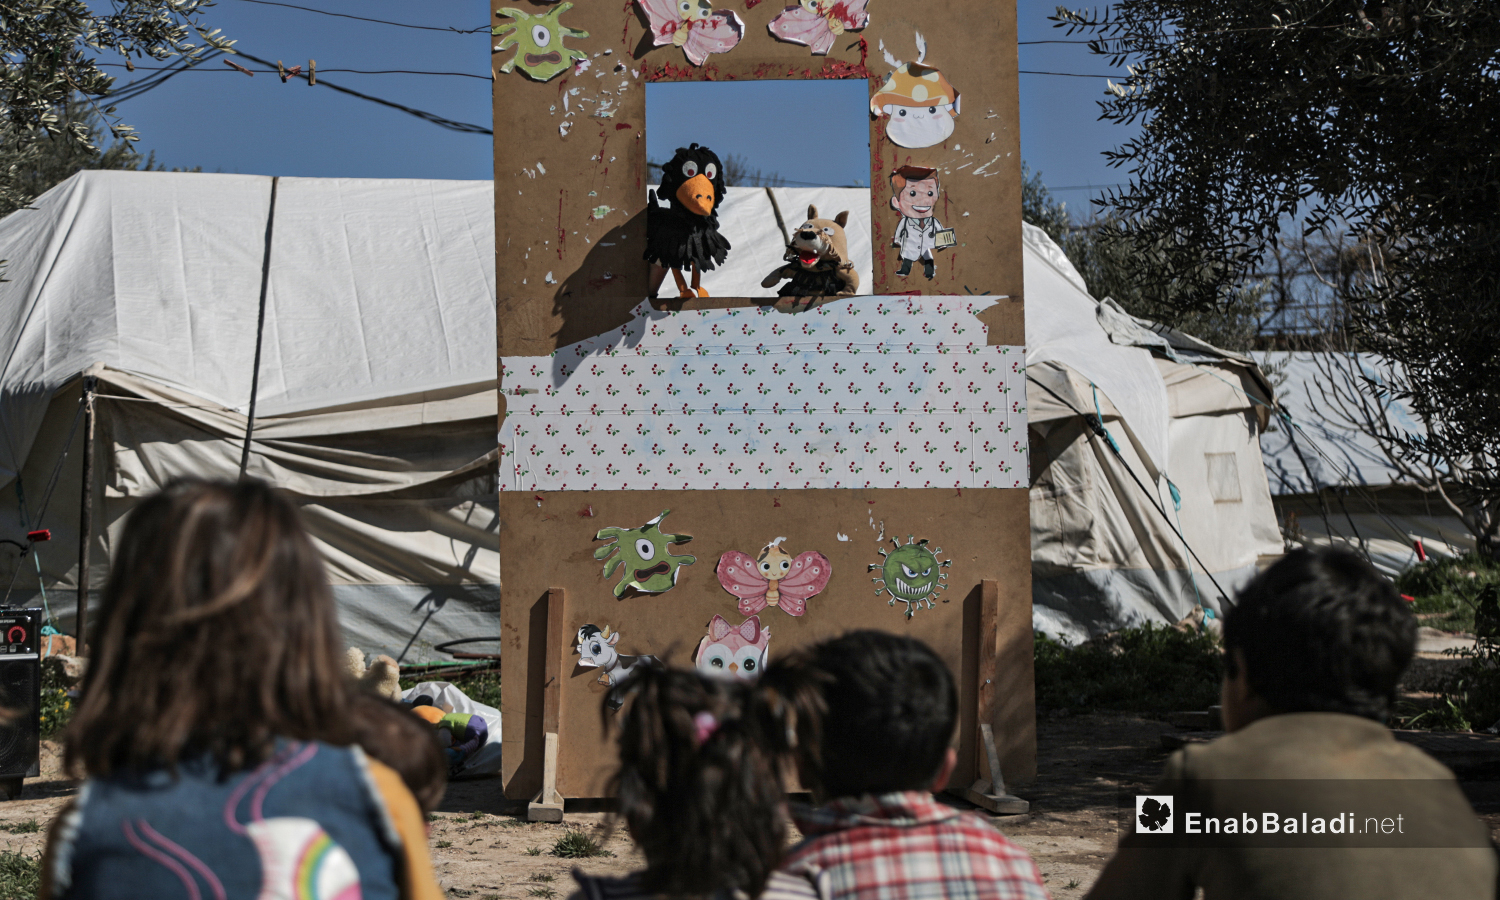 A puppet show staged by al-Harah theater group in one of the camps for internally displaced people (IDPs) near Idlib city - 28 March 2021 (Enab Baladi / Yousef Ghuraibi)